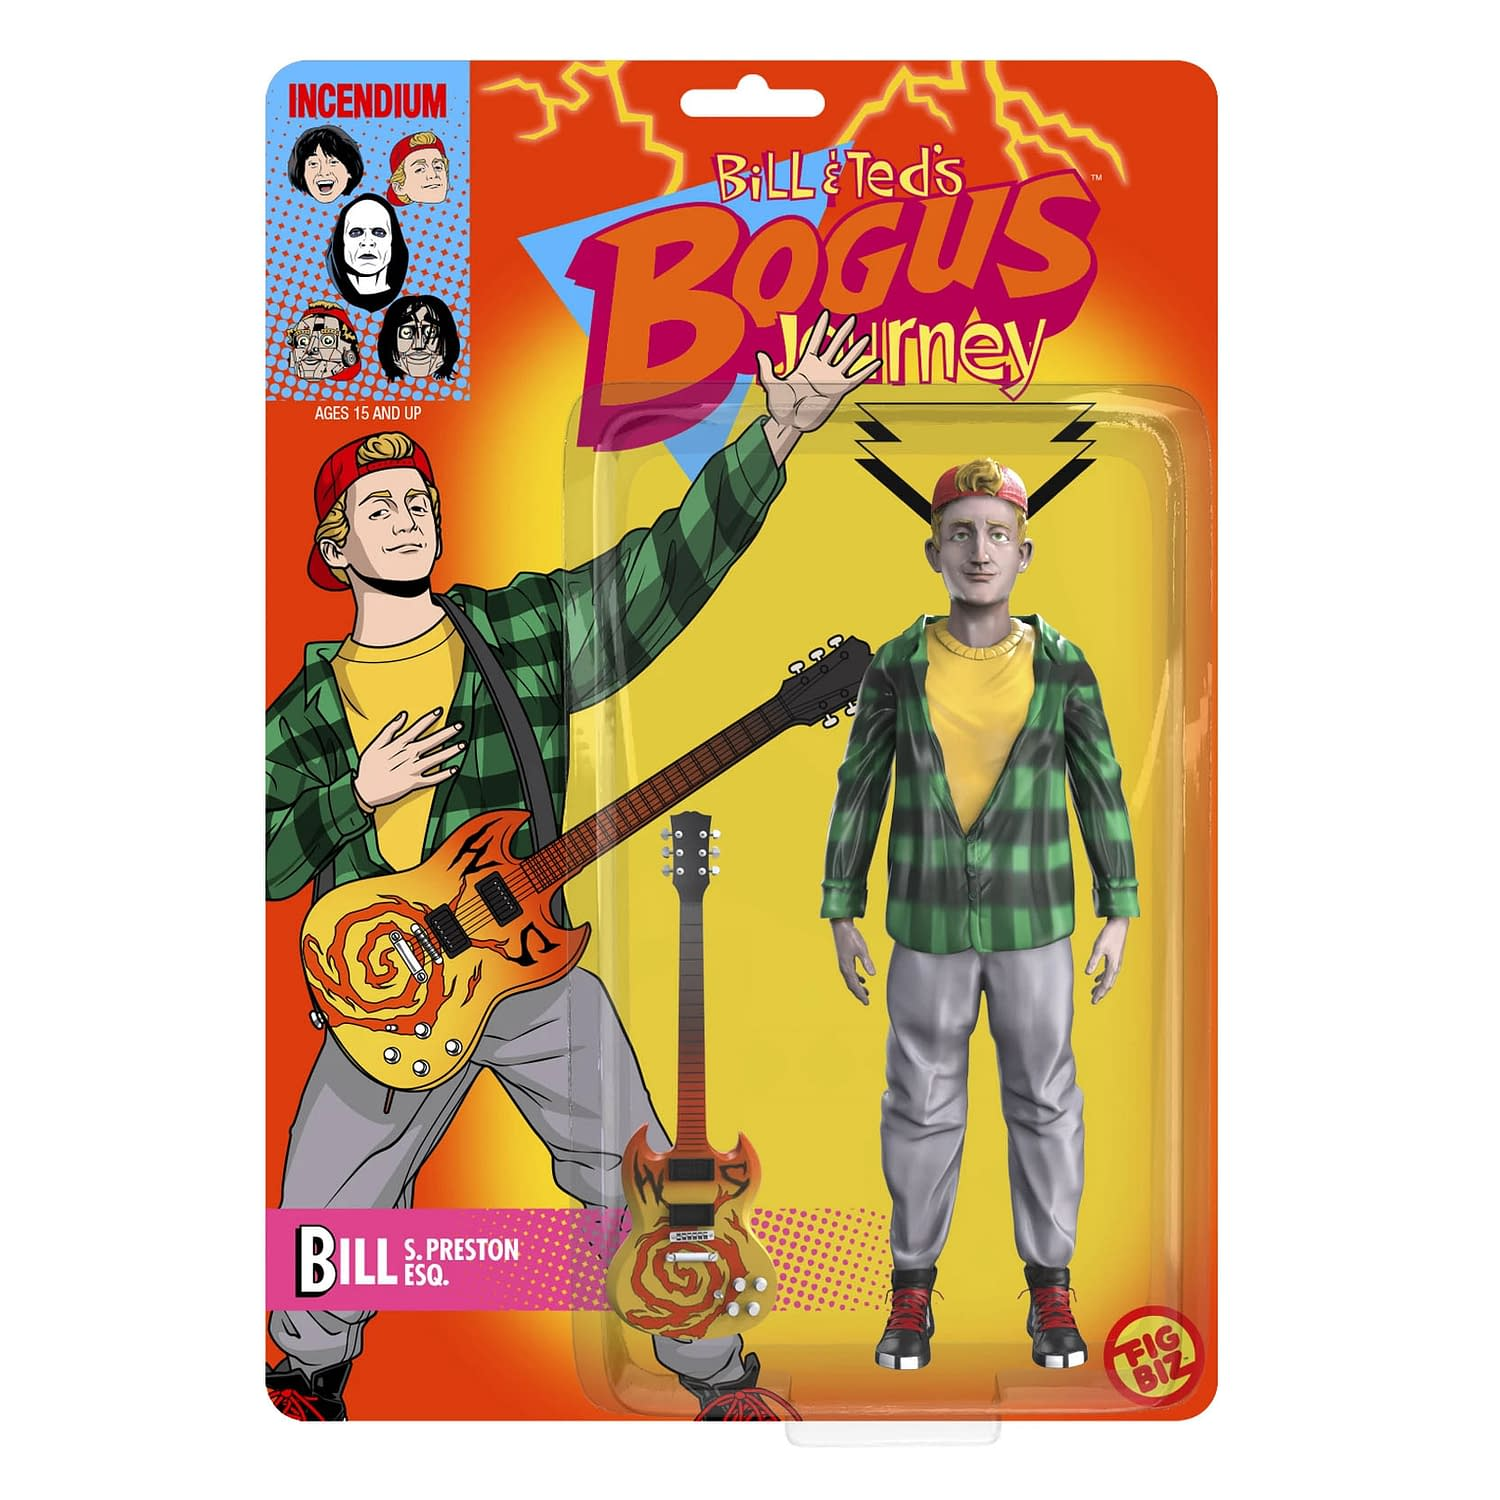 Bill & Ted Get Animated Once Again with New Incendium Figures